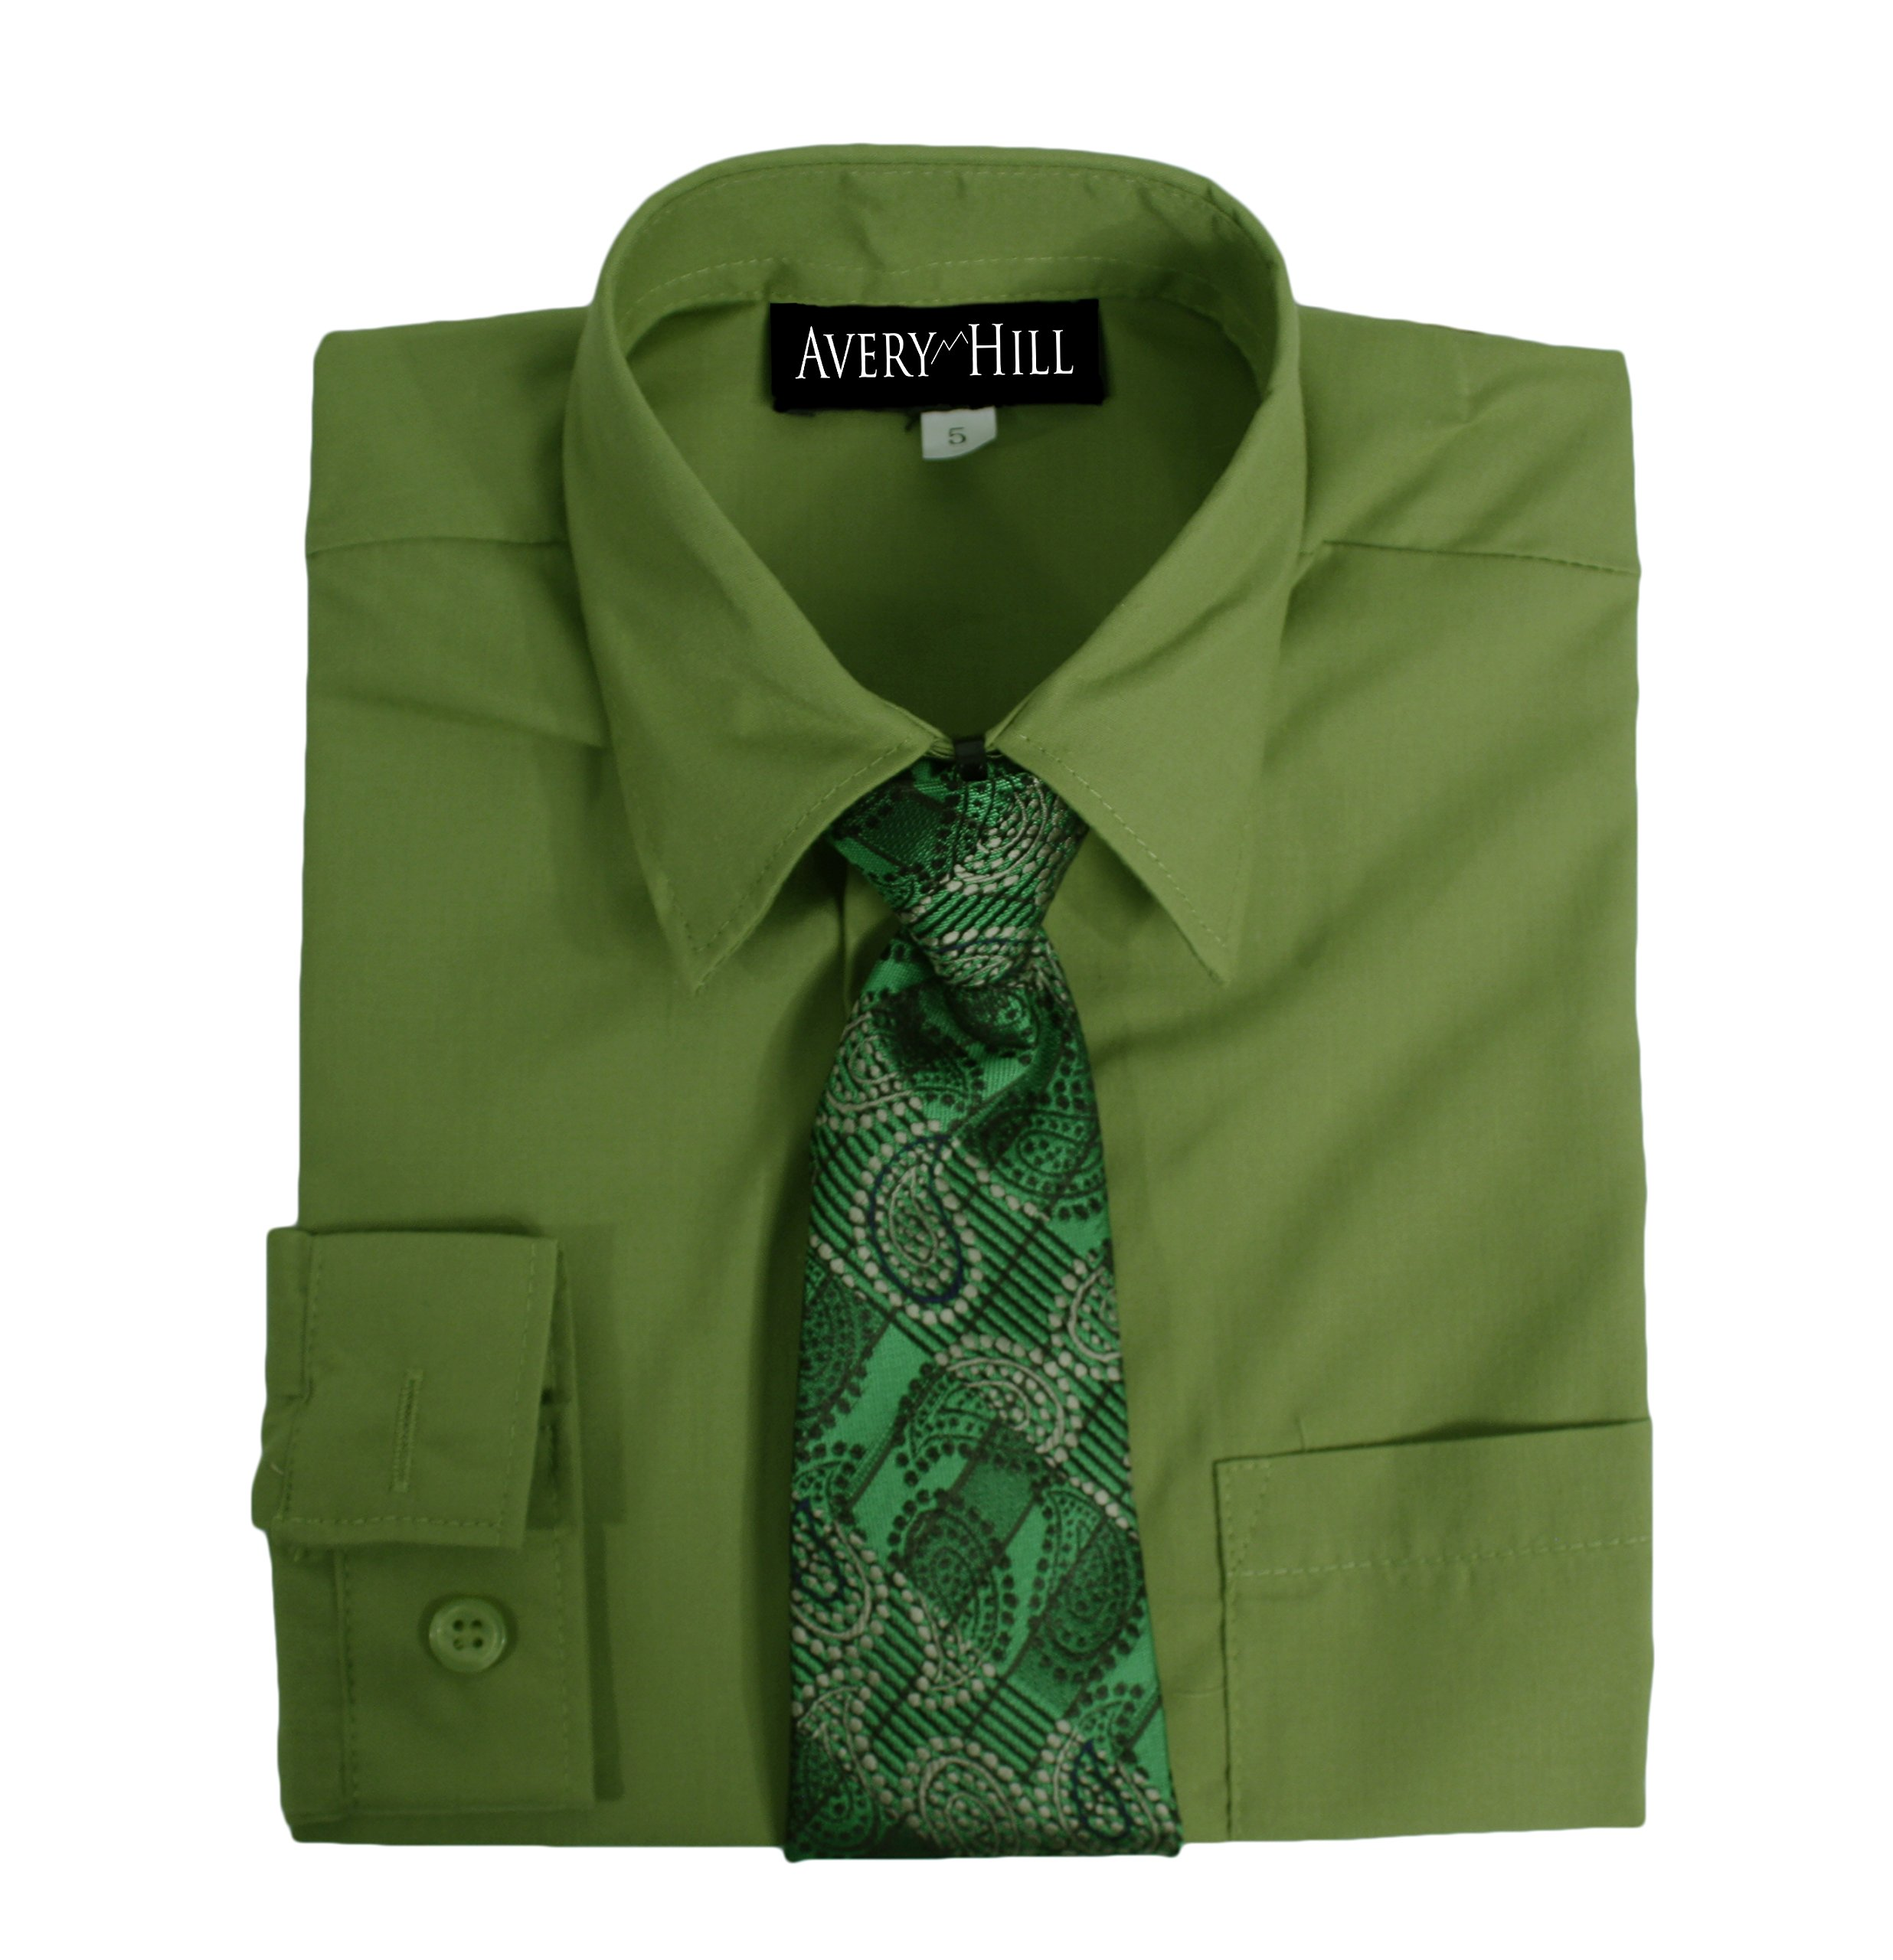 Avery Hill Boys Long Sleeve Dress Shirt with Windsor Tie Olive 12